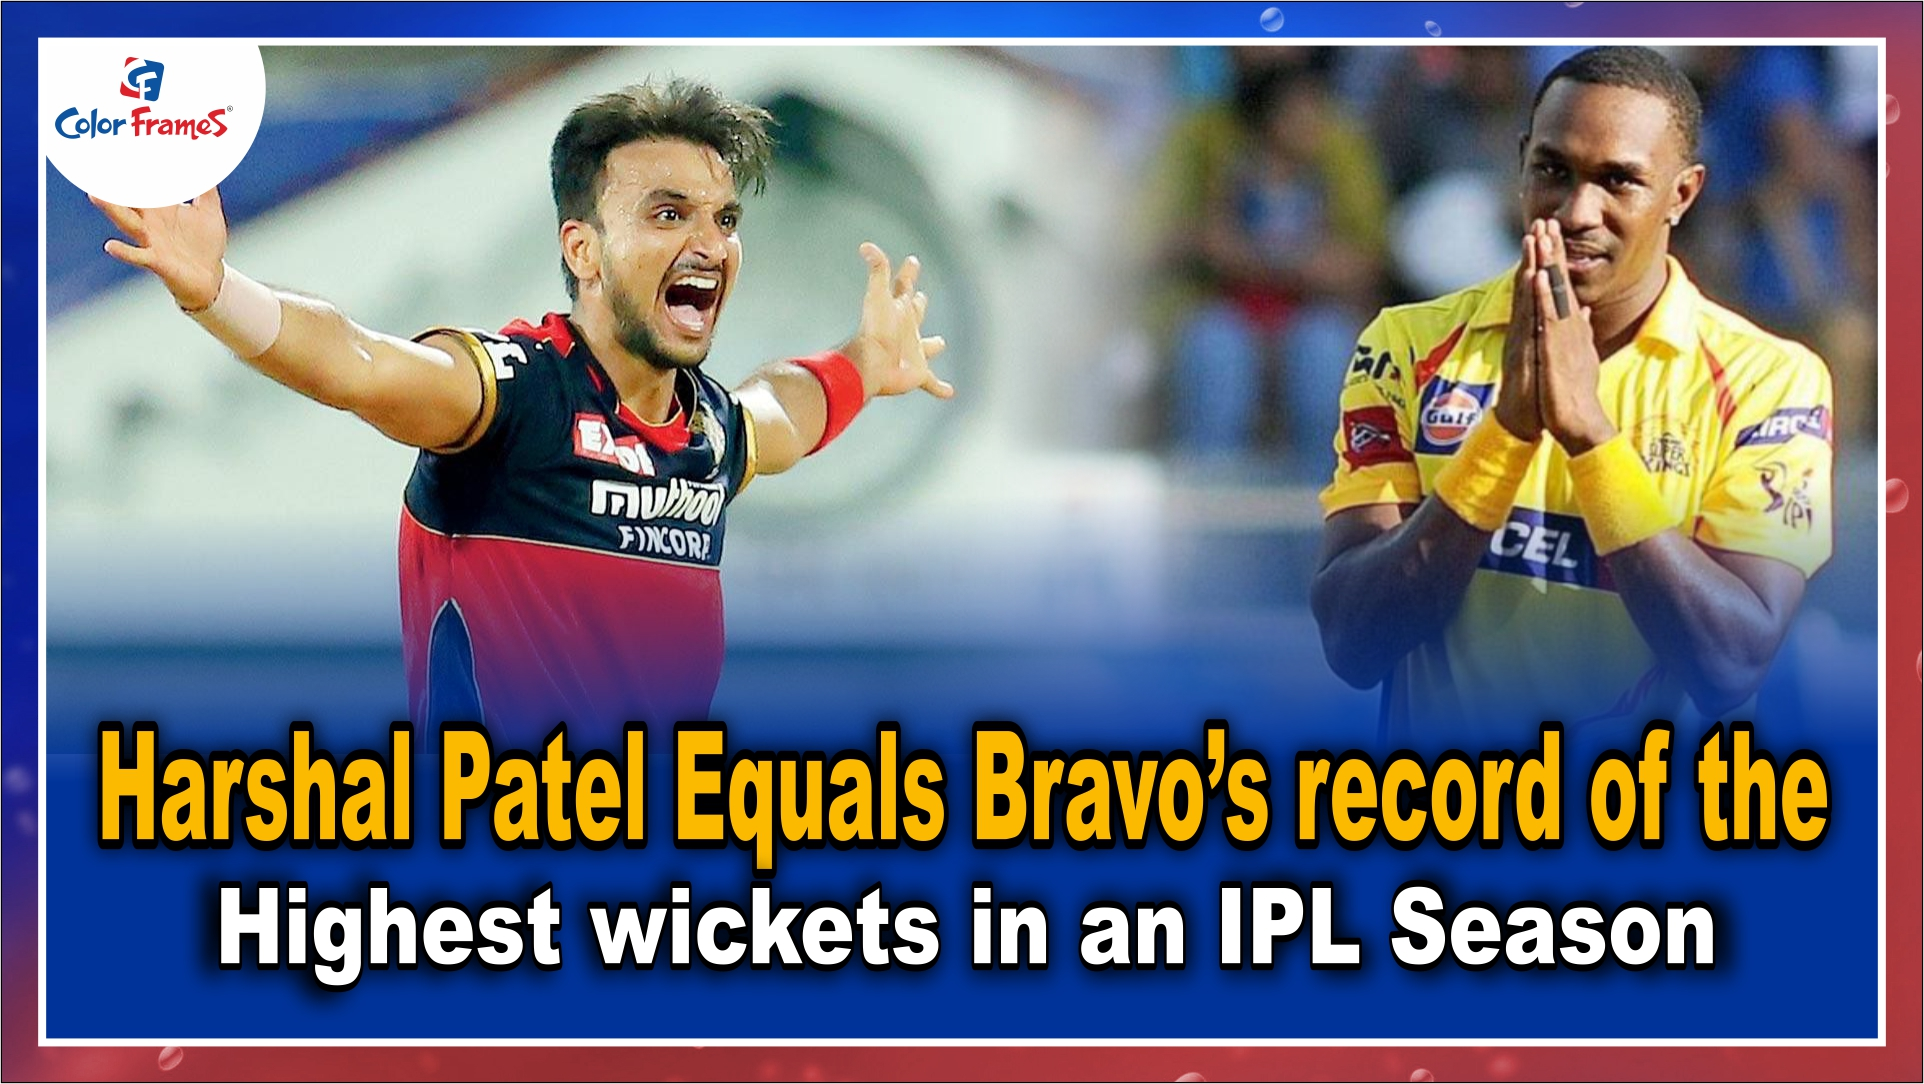 IPL 2021: Harshal Patel Equals Bravo's record of the highest wickets in an IPL Season